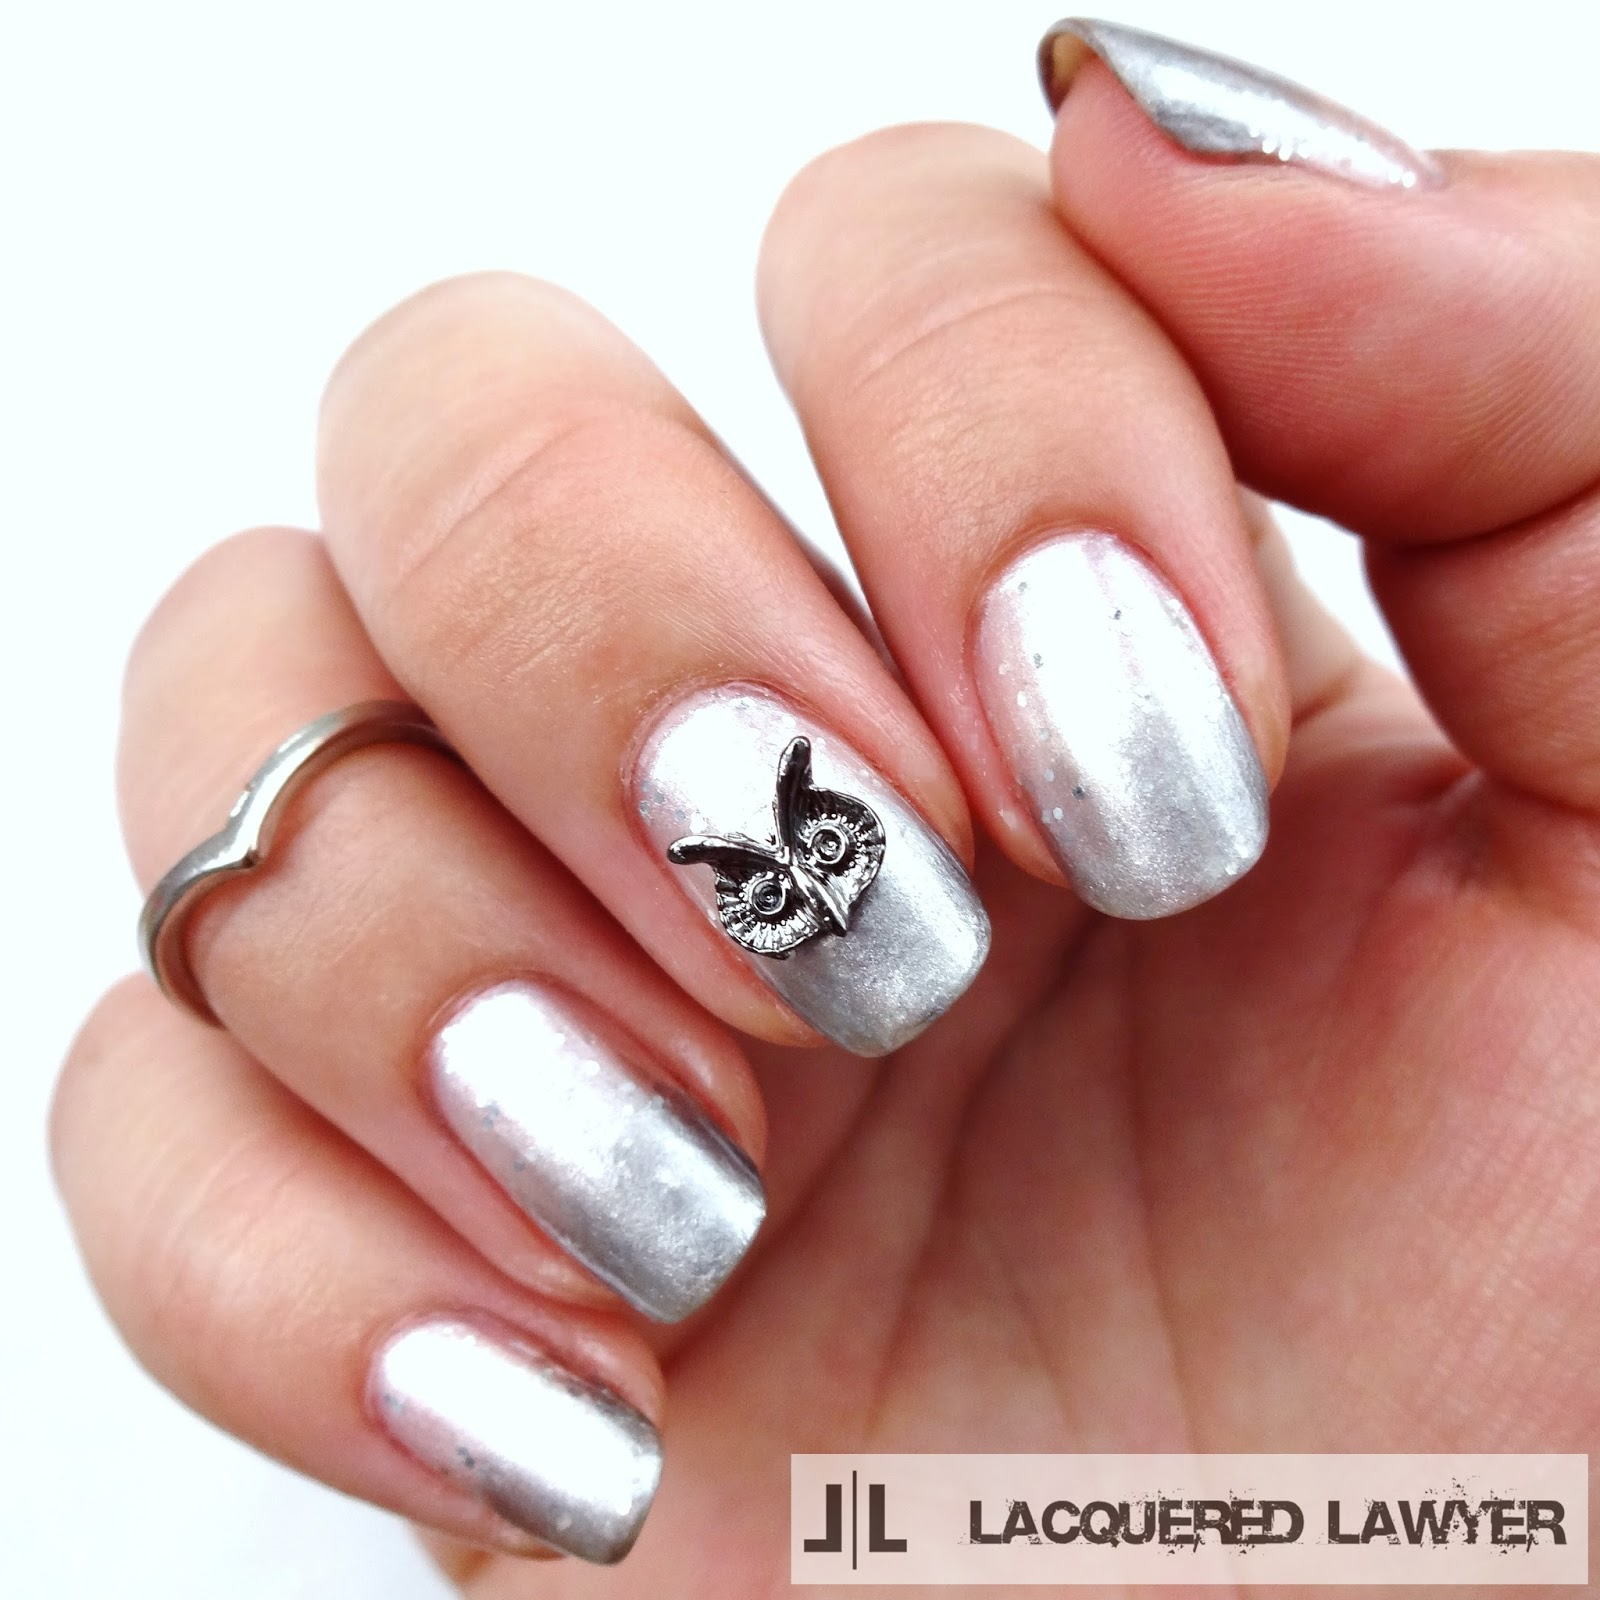 Lacquered Lawyer Nail Art Blog Whoos There